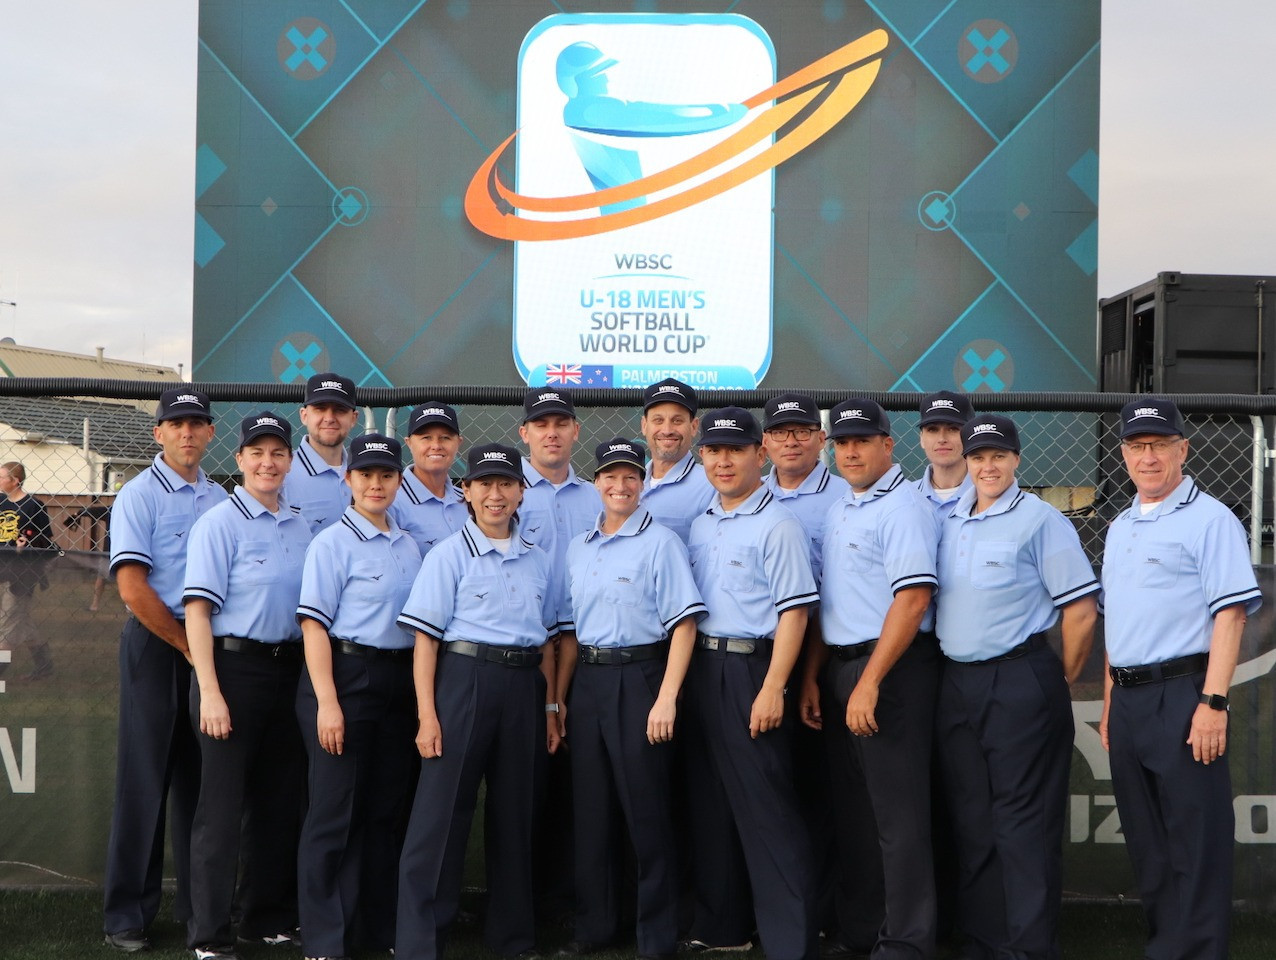 Softball is returning to the Olympic stage for the first time since Beijing 2008 ©WBSC